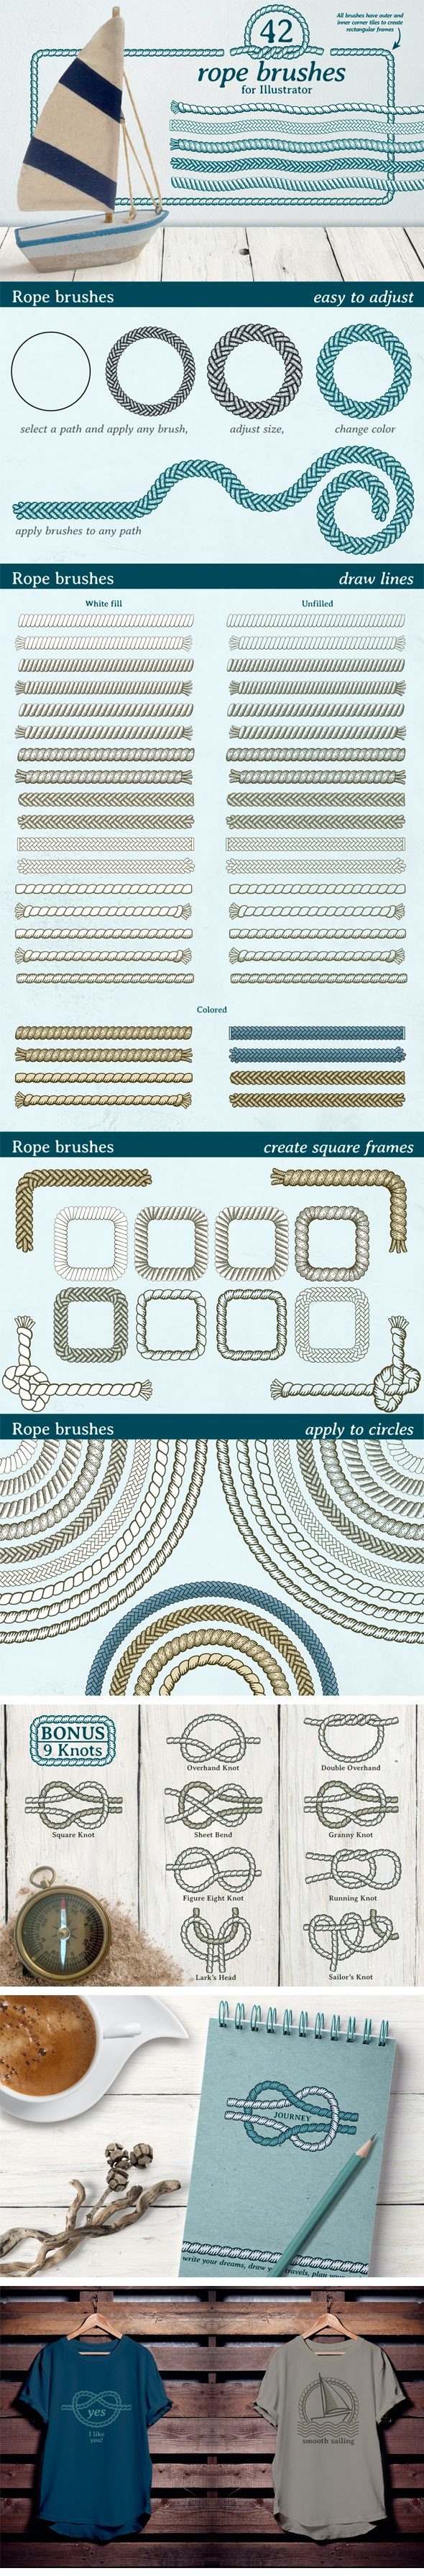 Rope Brushes - Miscellaneous Brushes